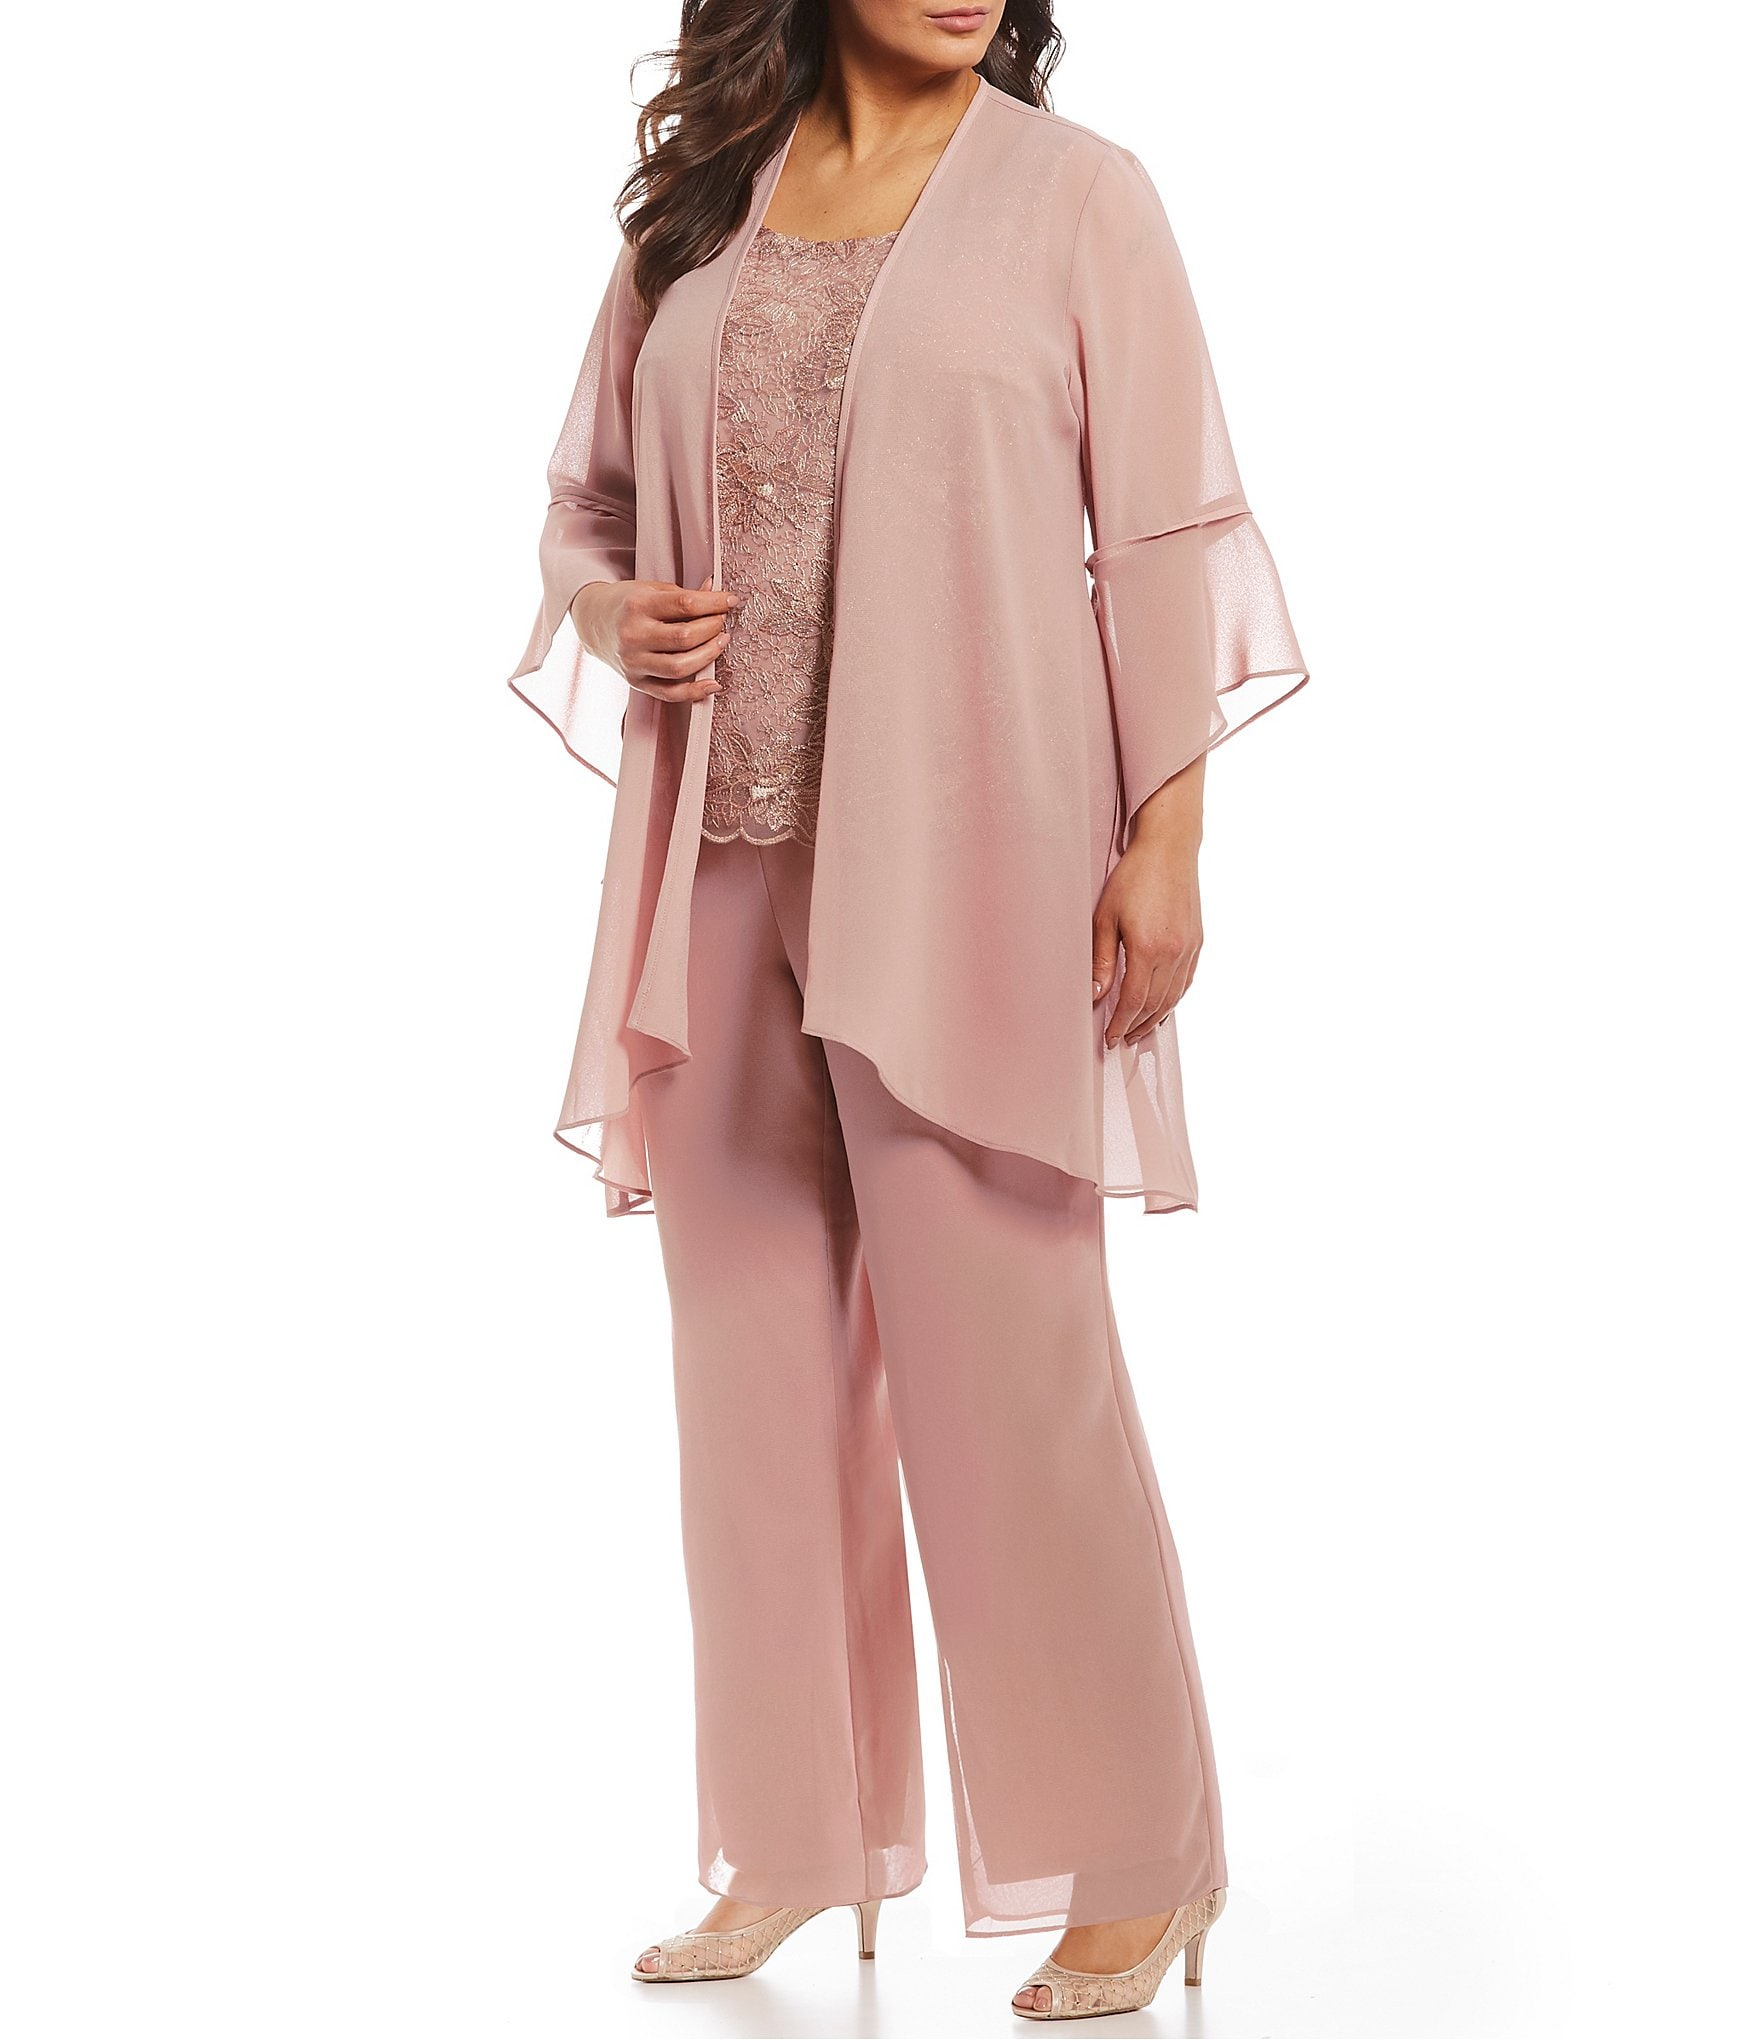 Le Bos Plus Size 3-Piece Bell Sleeve Duster Pant Set